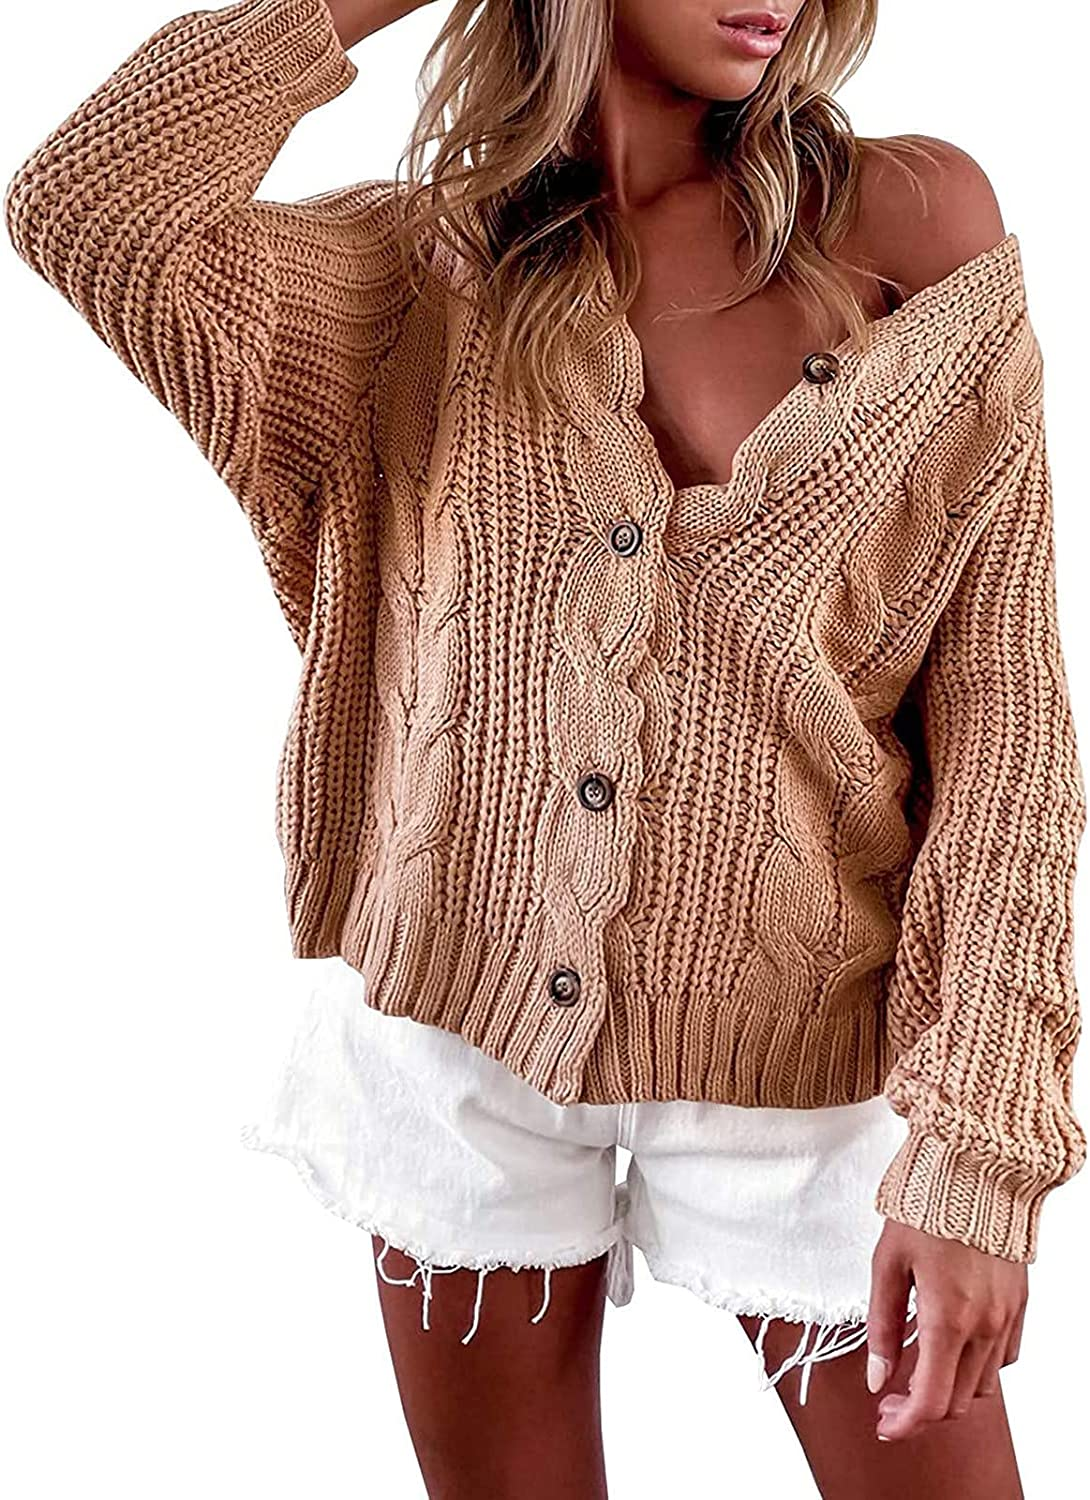 BEUU Women's Button Down Cardigan Sweaters Open Front Cable Knit Off Shoulder Long Sleeve Cable Knit Baggy Crop Outwear